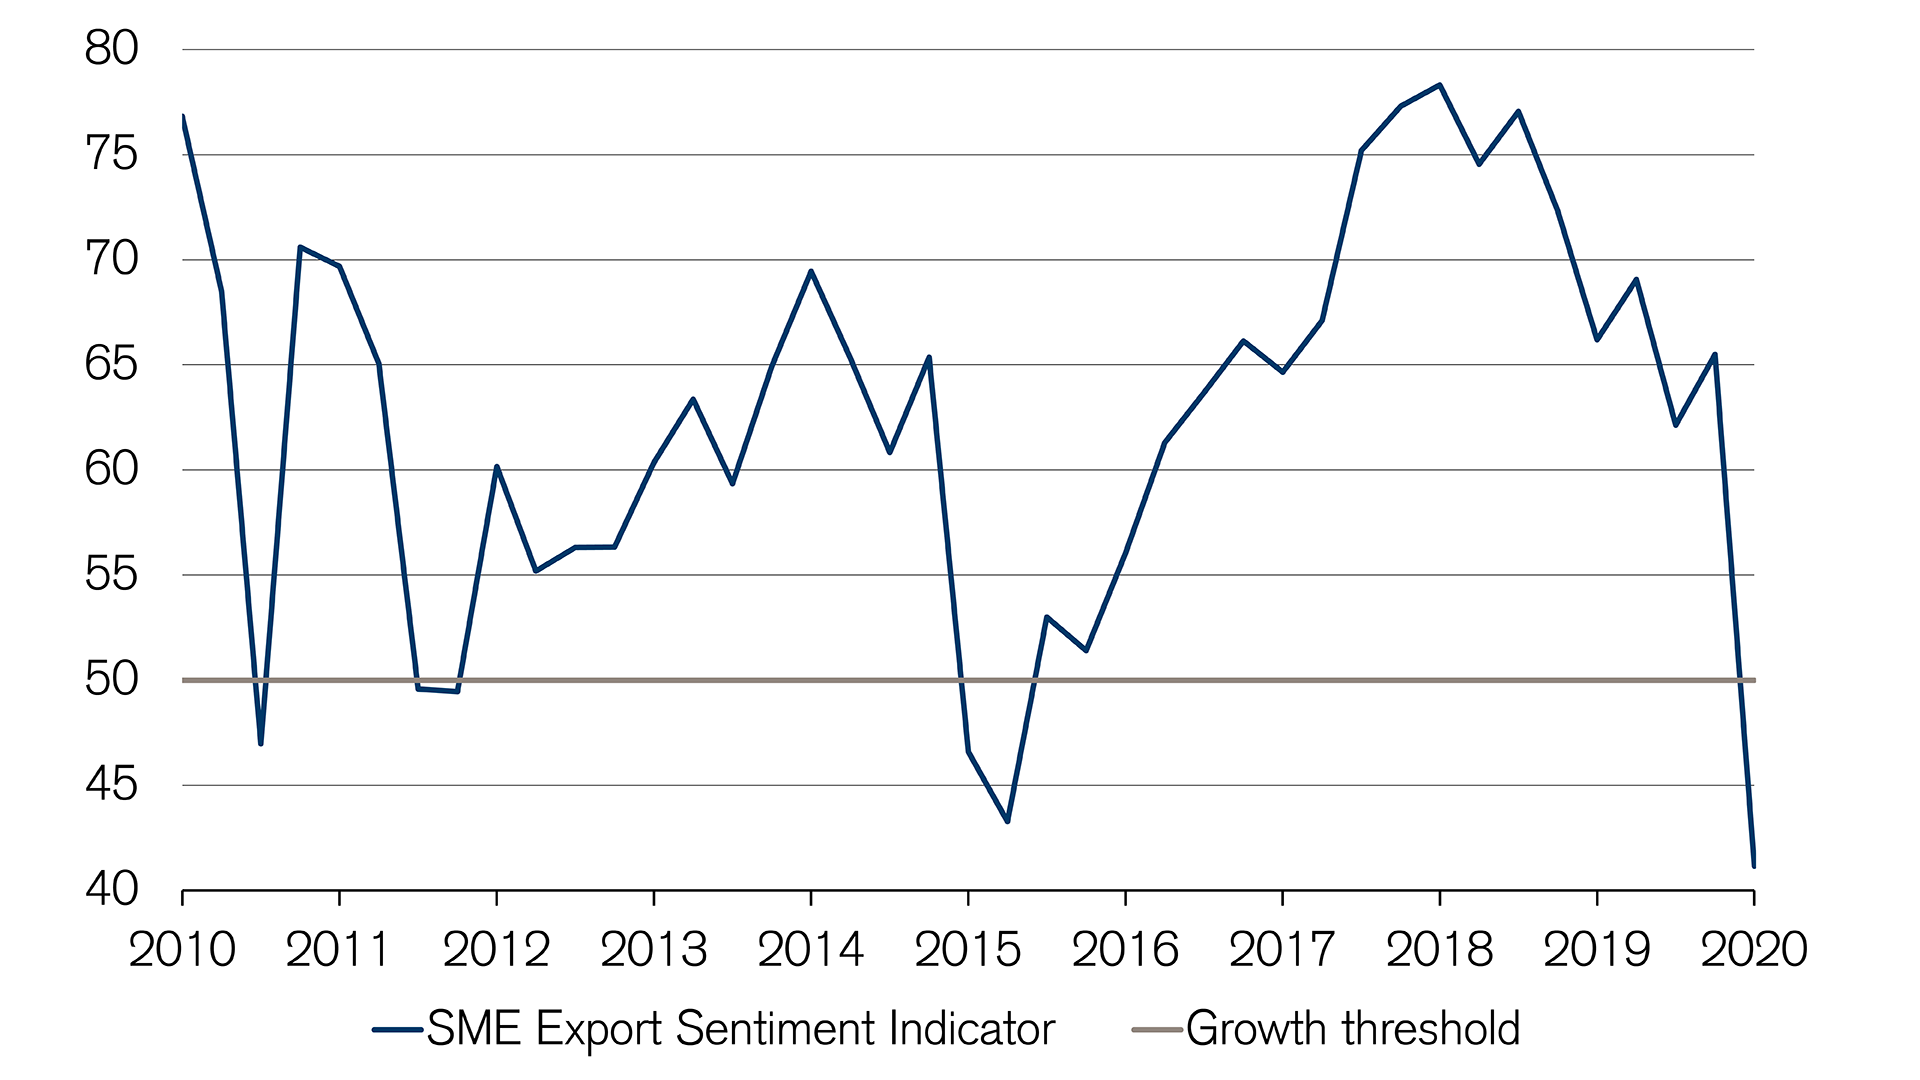 Swiss export sentiment falls sharply in 2020